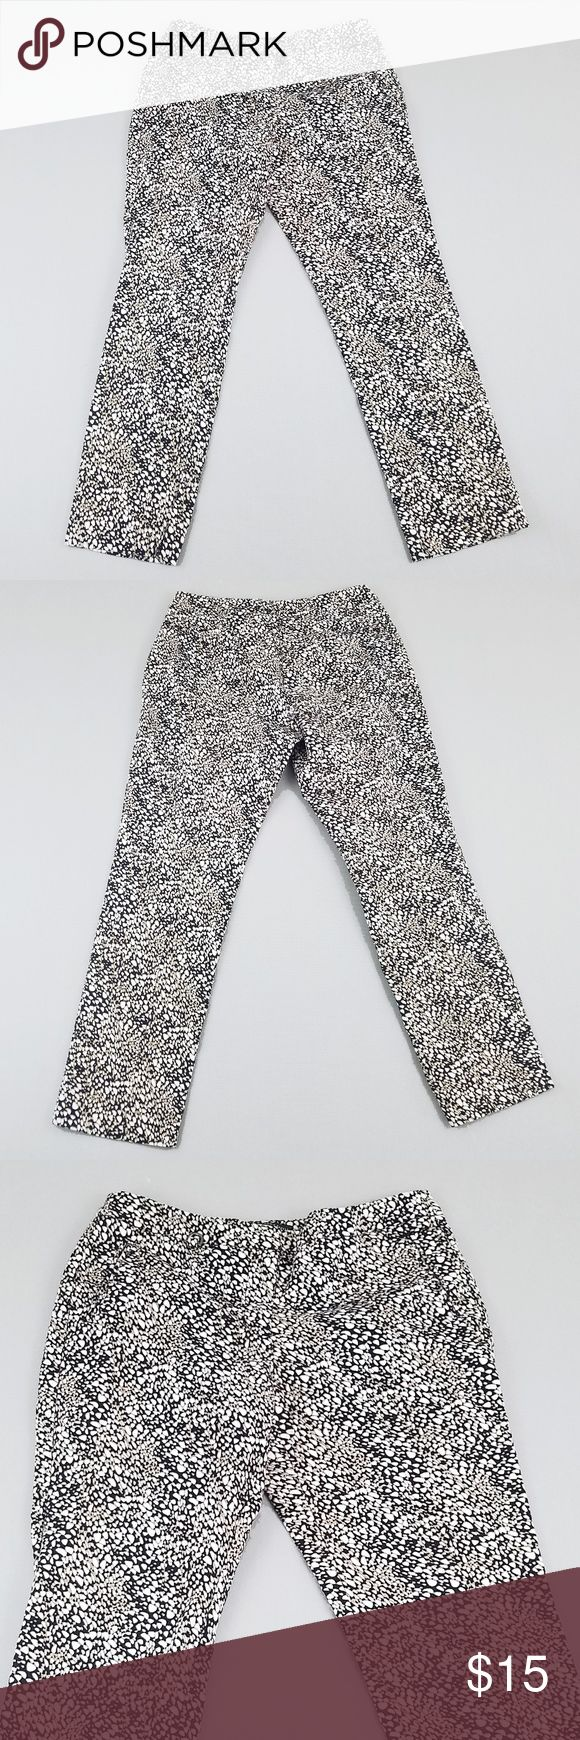 """Adrianna Papell Womens Capris 6 Stretch Printed Adrianna Papell Womens Capris 6 Stretch Printed Cropped Work Dressy Seam to seam across waist: 15"""" Rise: 9"""" Inseam: 26.5"""" Top of waist to bottom (length): 34.75""""  Excellent condition Adrianna Papell Pants Capris"""